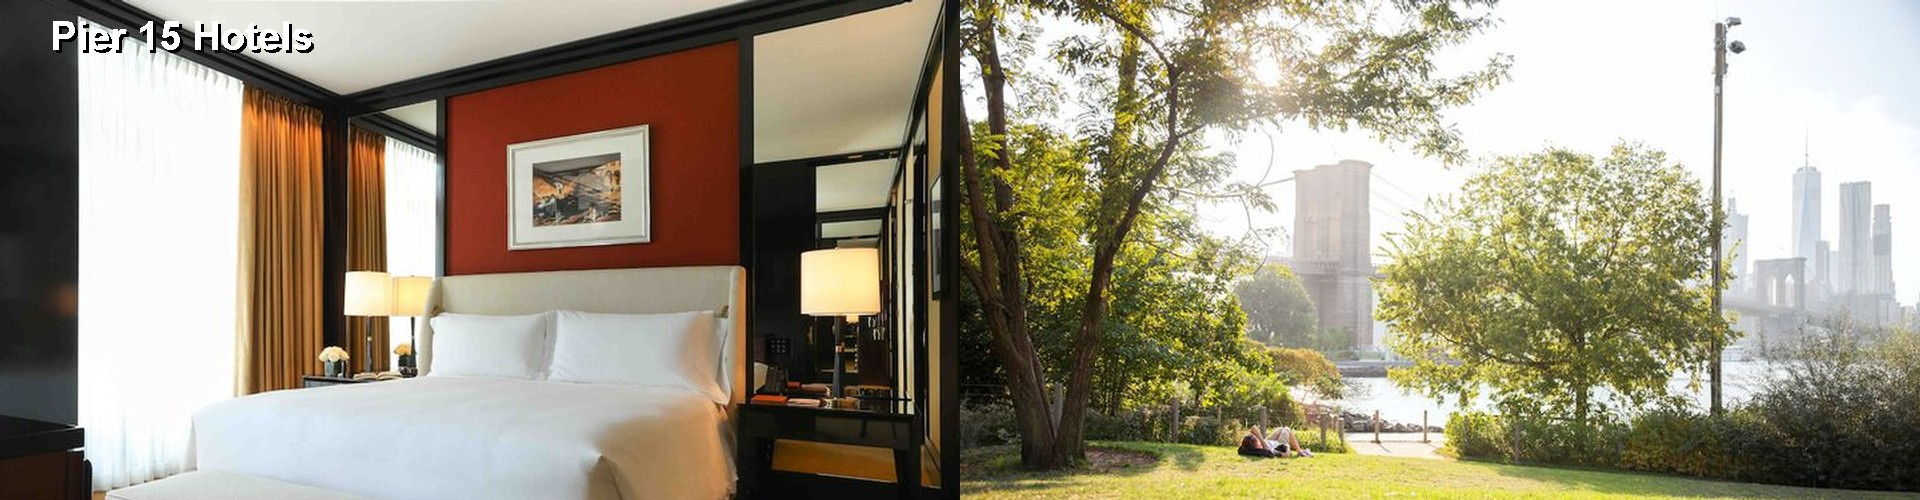 5 Best Hotels near Pier 15